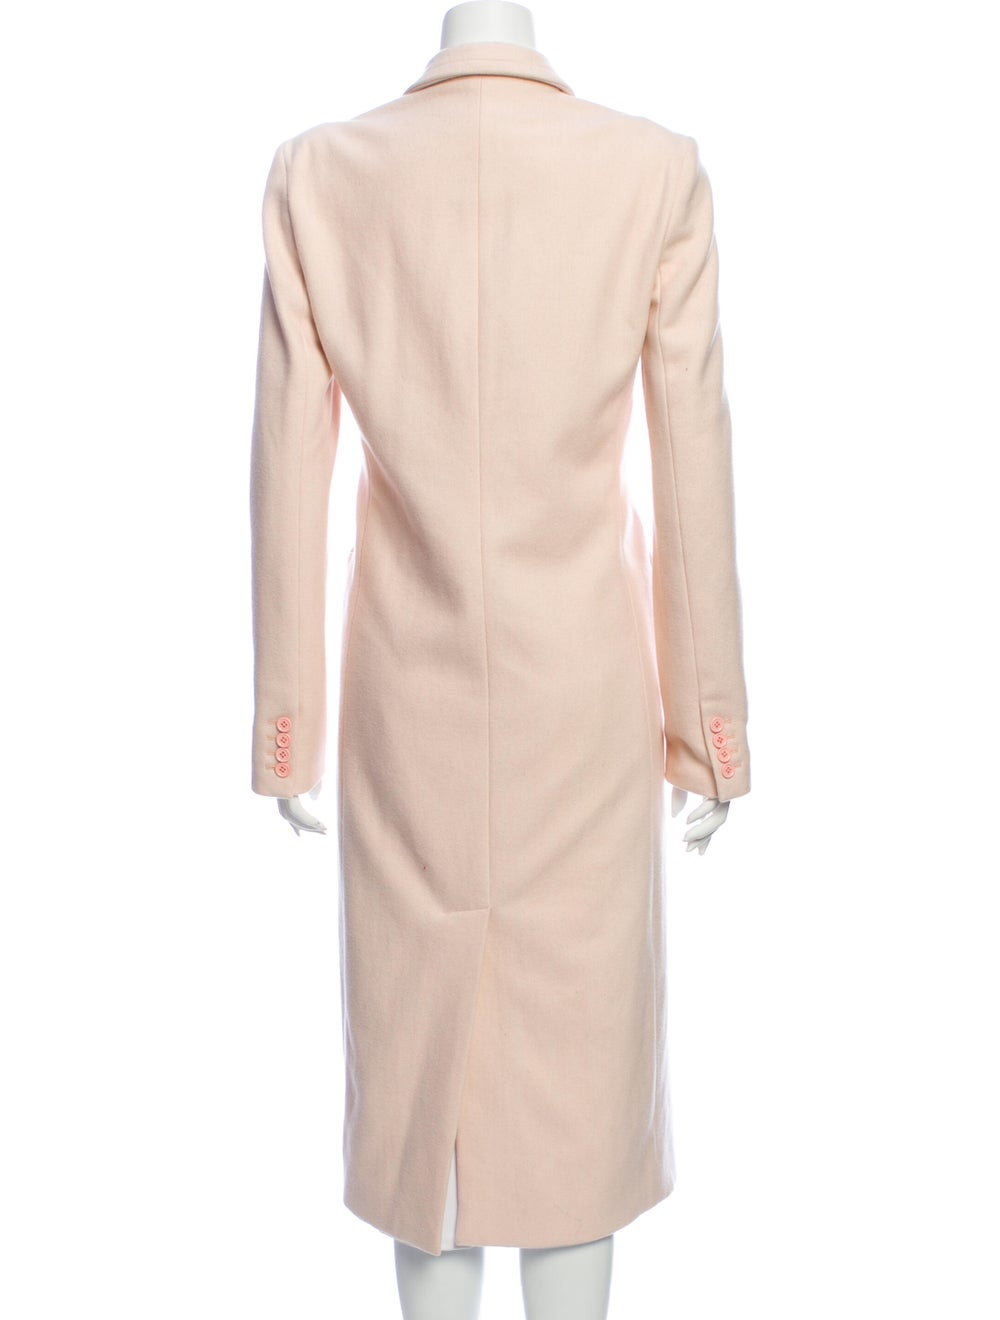 Charles Youssef Trench Coat Pink - image 3